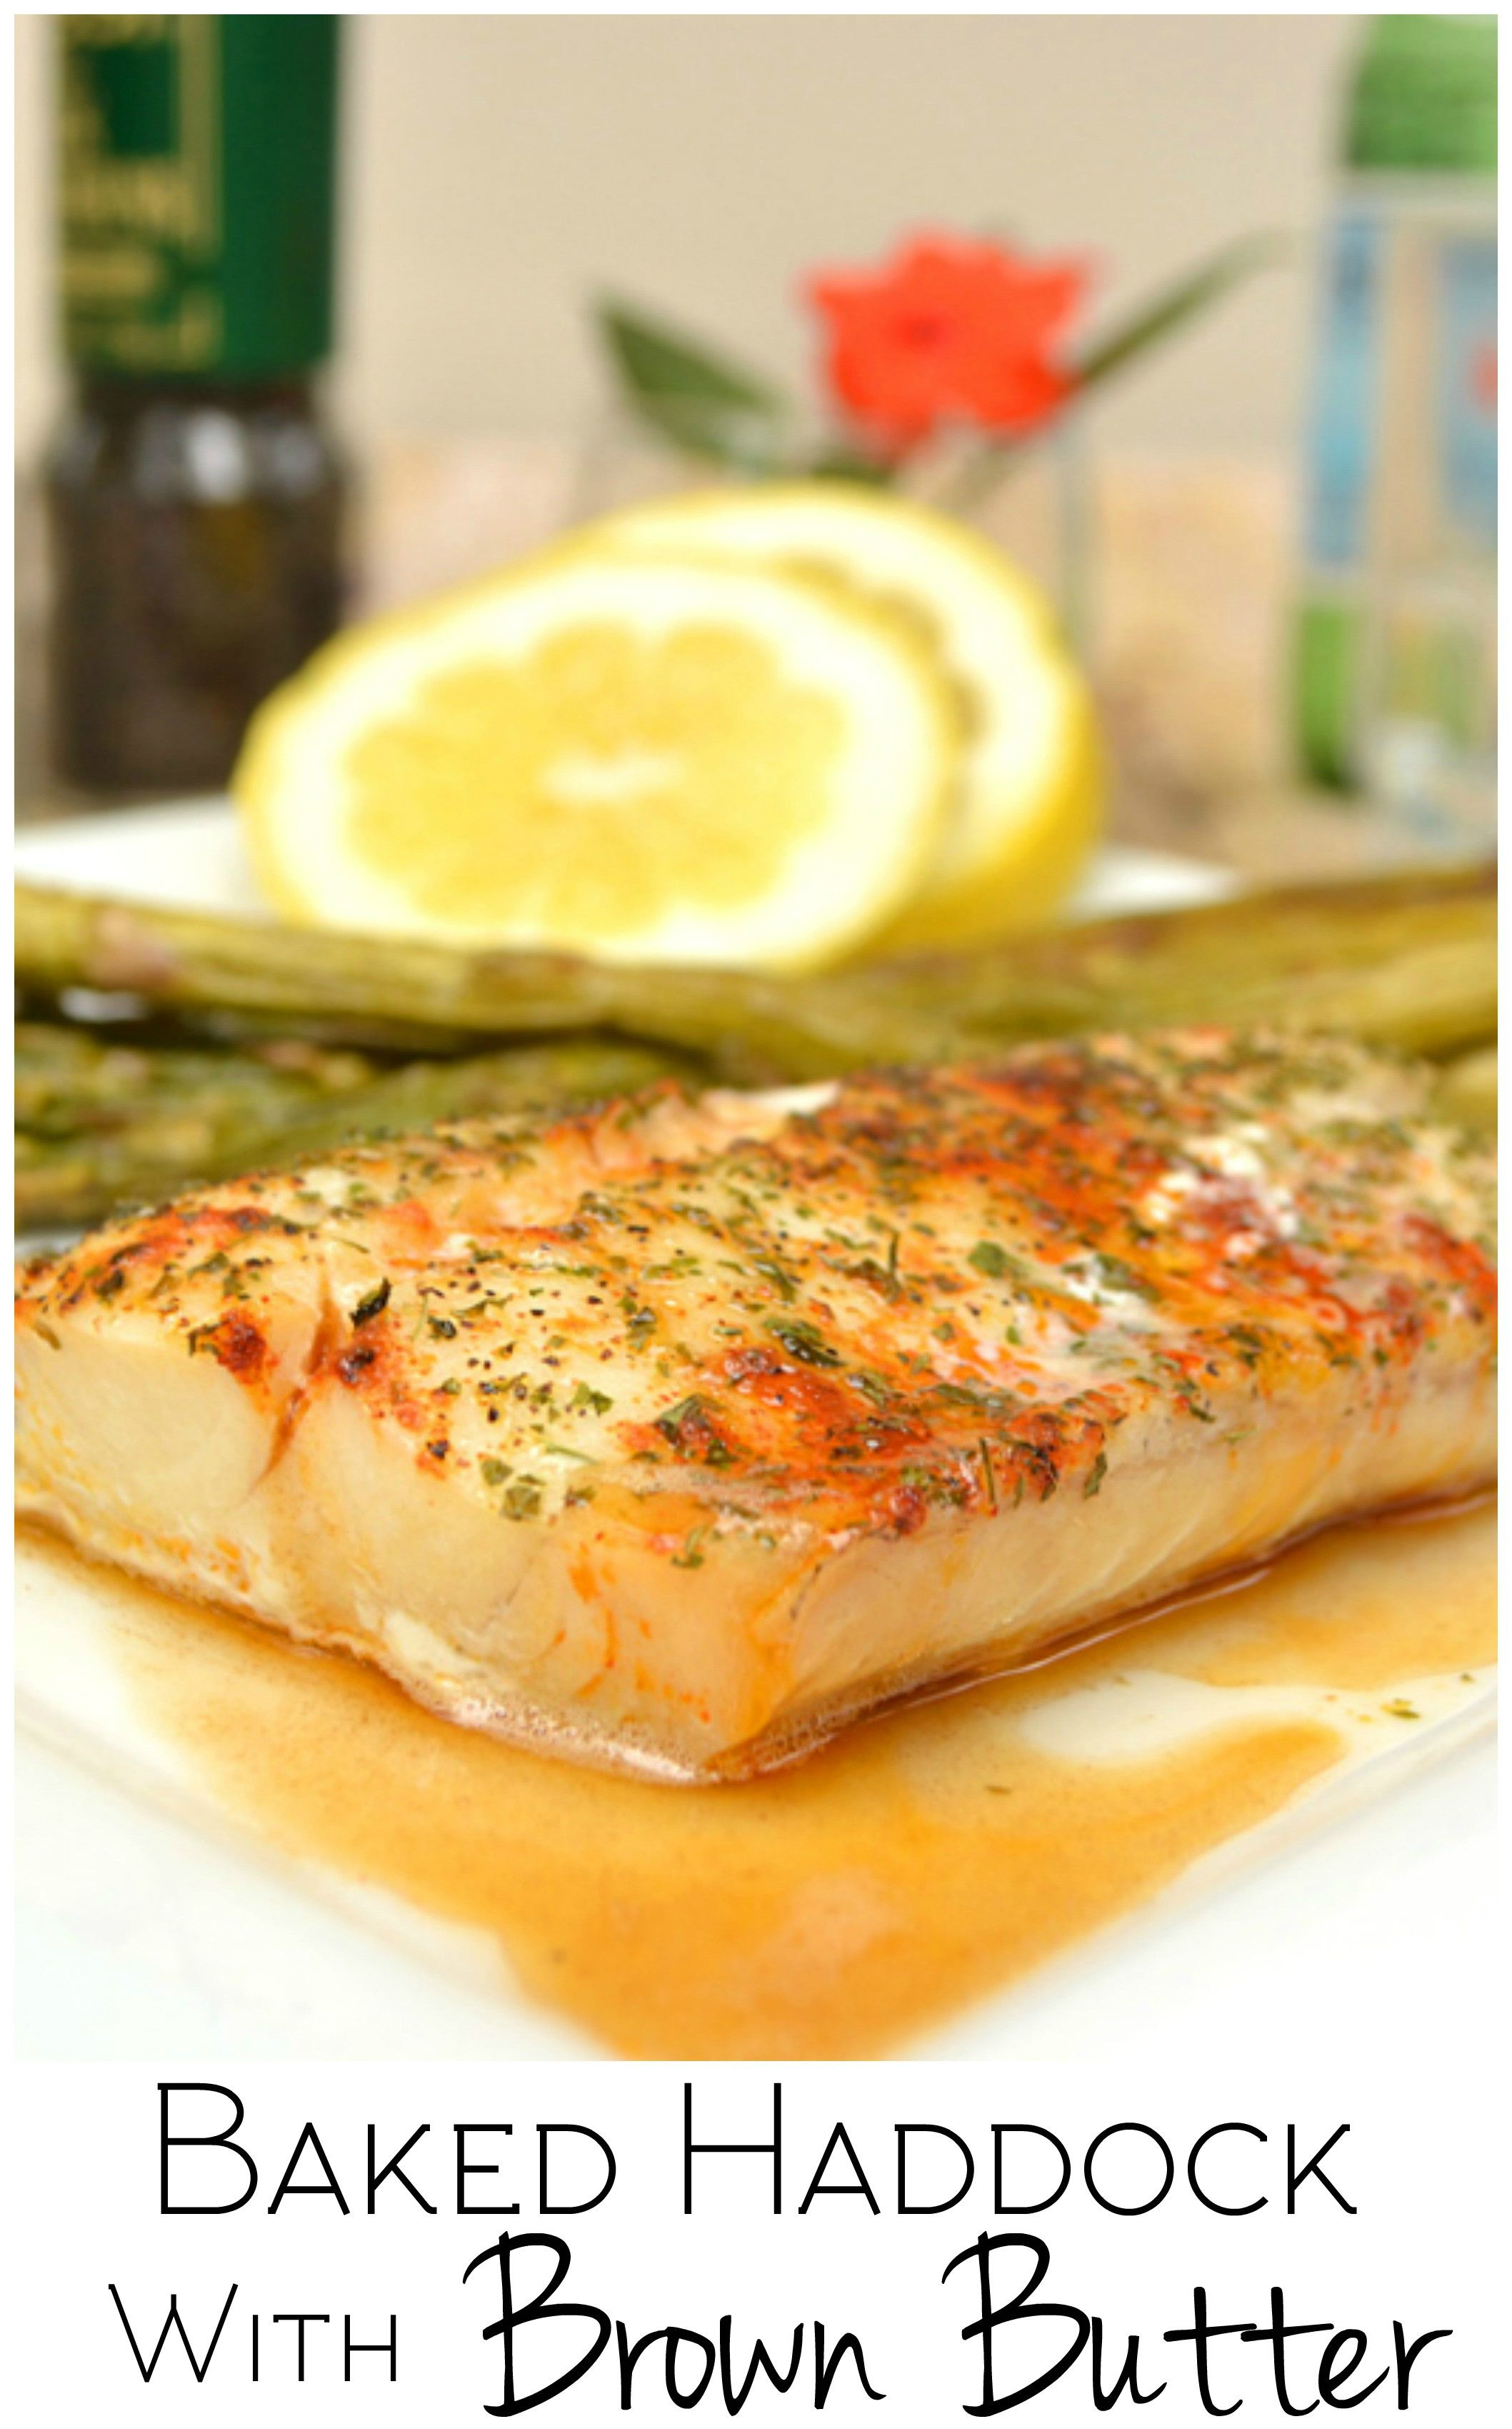 Recipes for cooking haddock